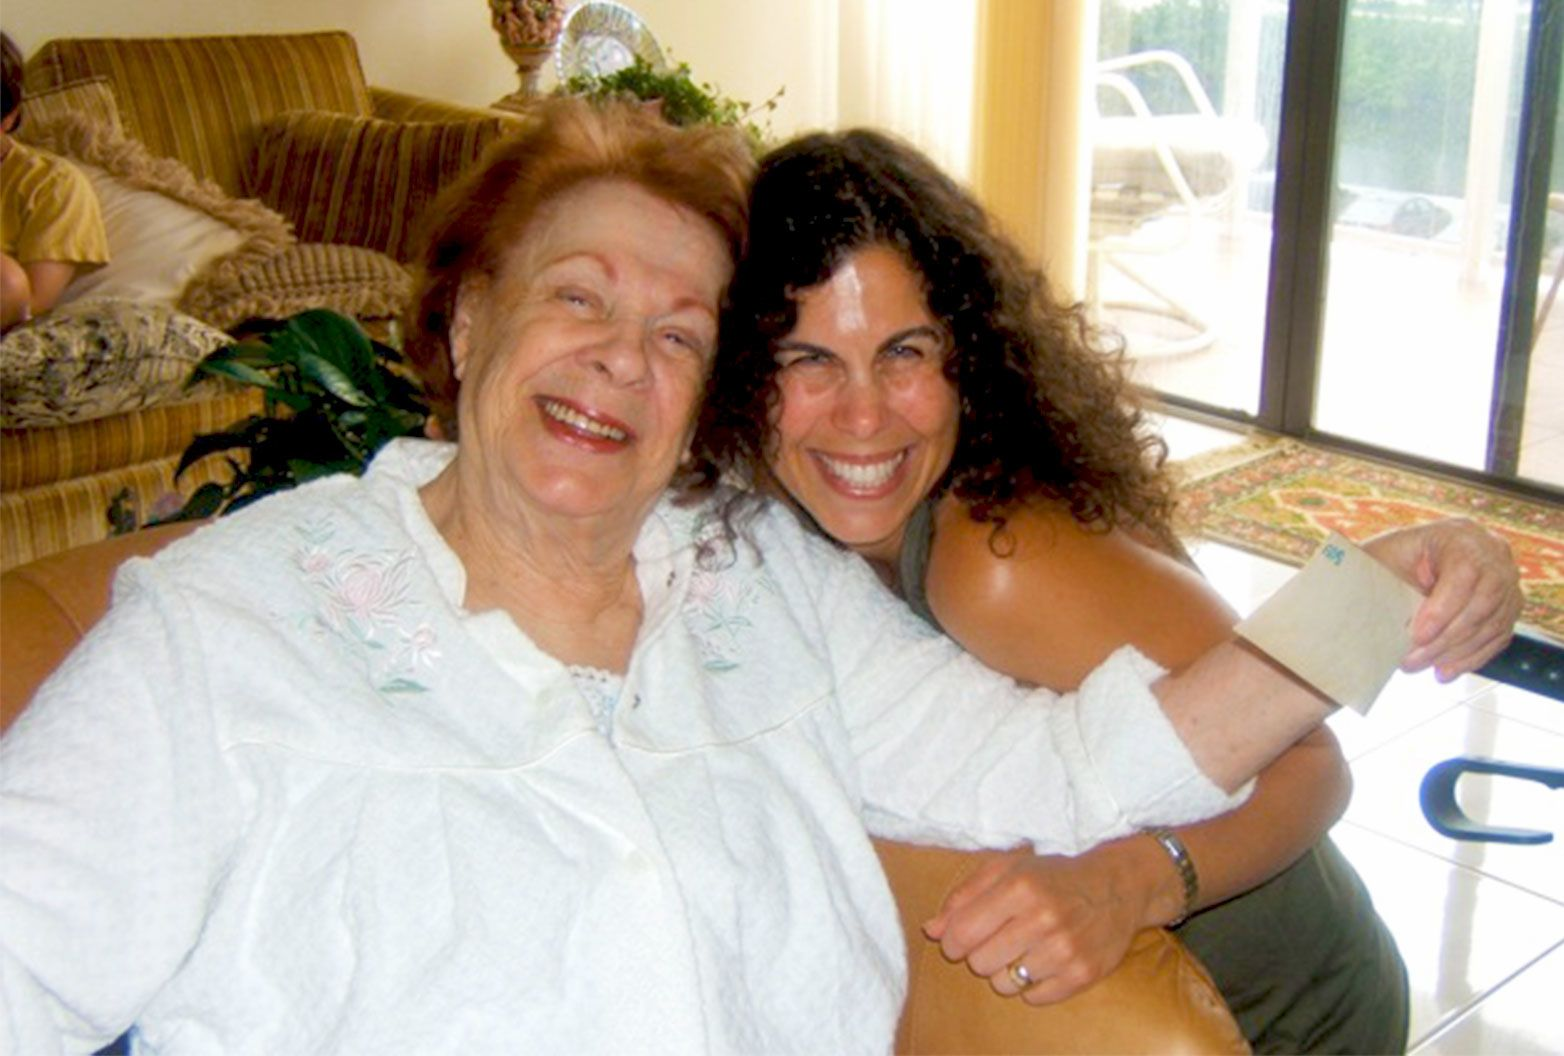 Woman with black hair poses for a photo beside an older woman with red hair and a white dress. They both have huge smiles.